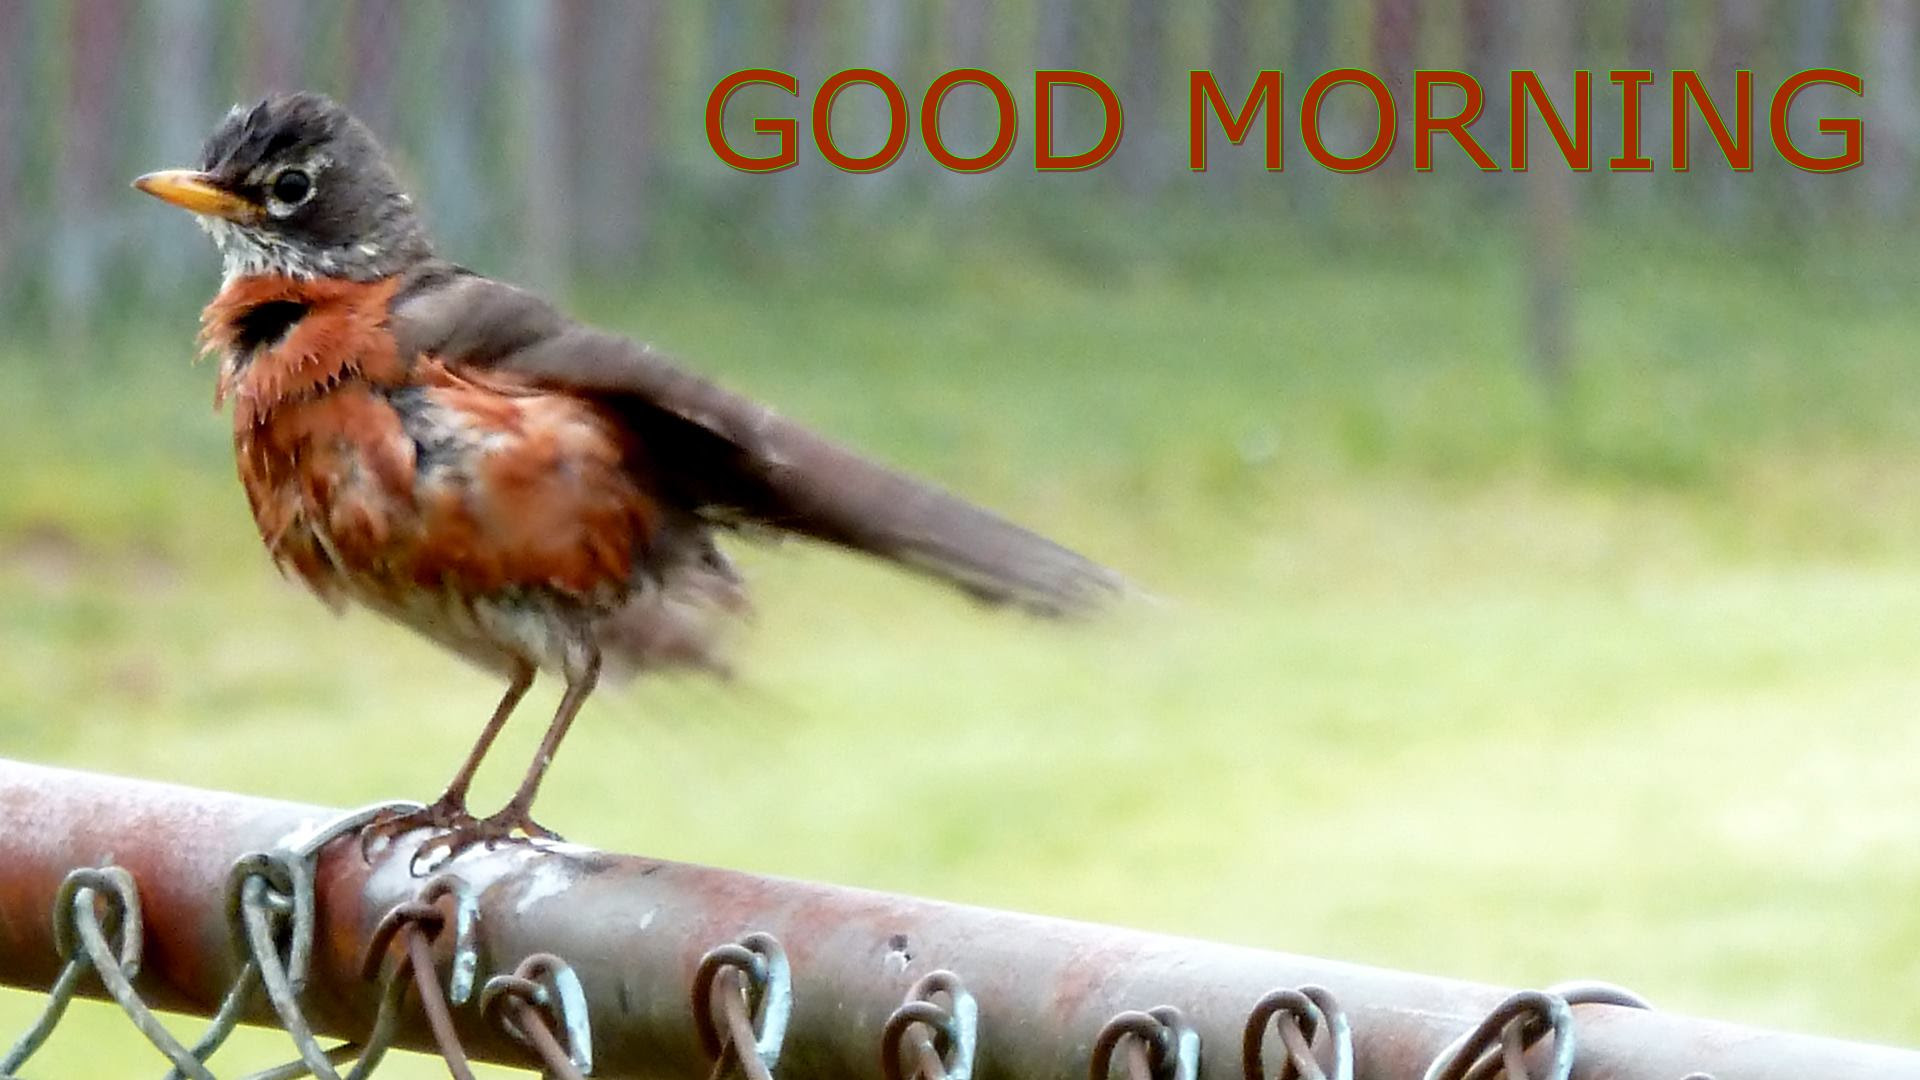 Good Morning Bird Images